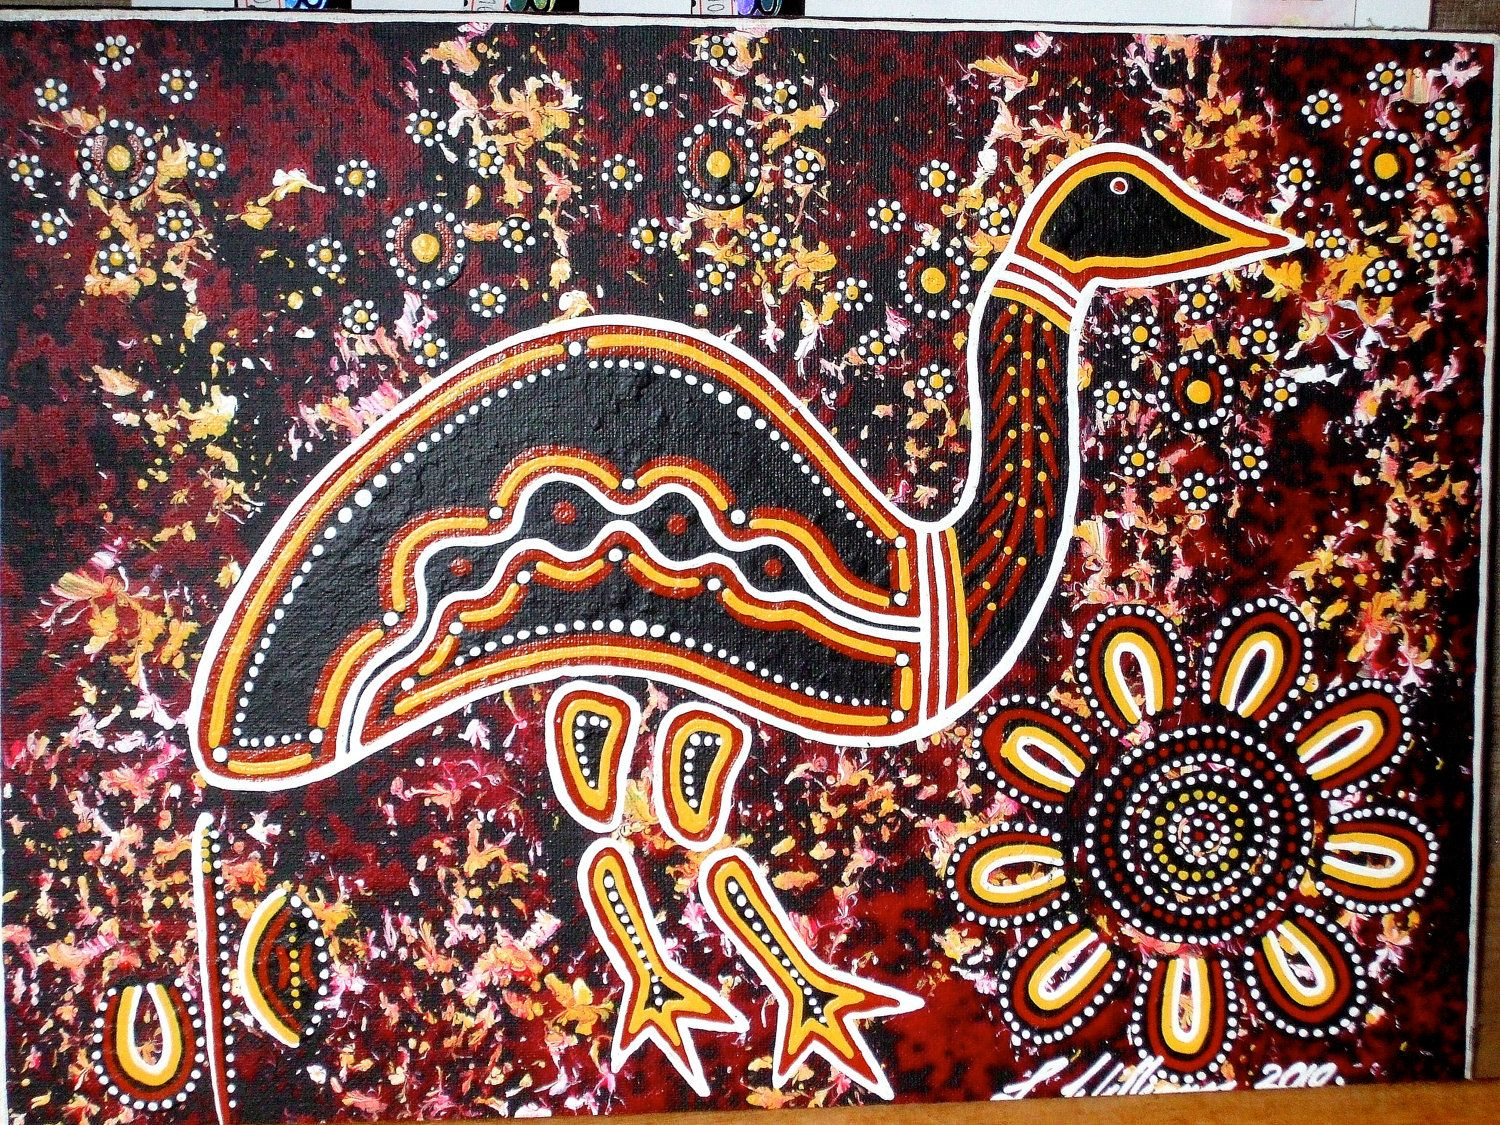 aboriginal art - Google Search | Art | Pinterest | Aboriginal art ...